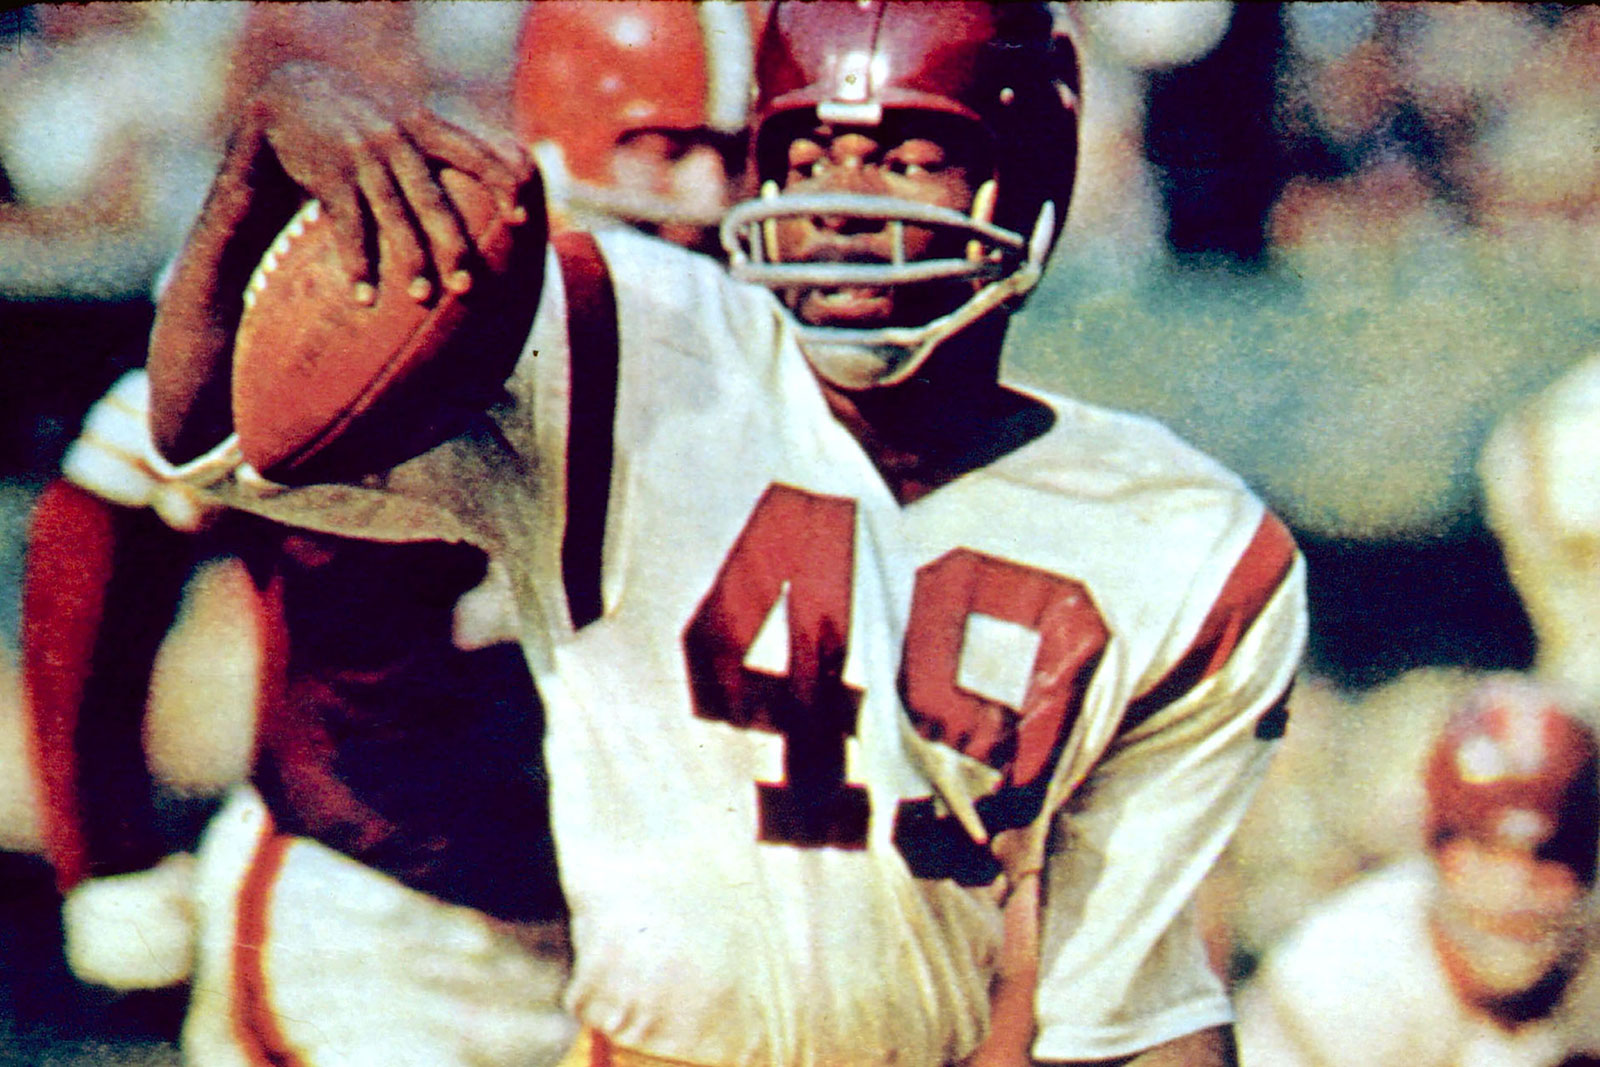 Bobby Mitchell runs the ball during a game between the Cleveland Browns and Washington Redskins in 1963.